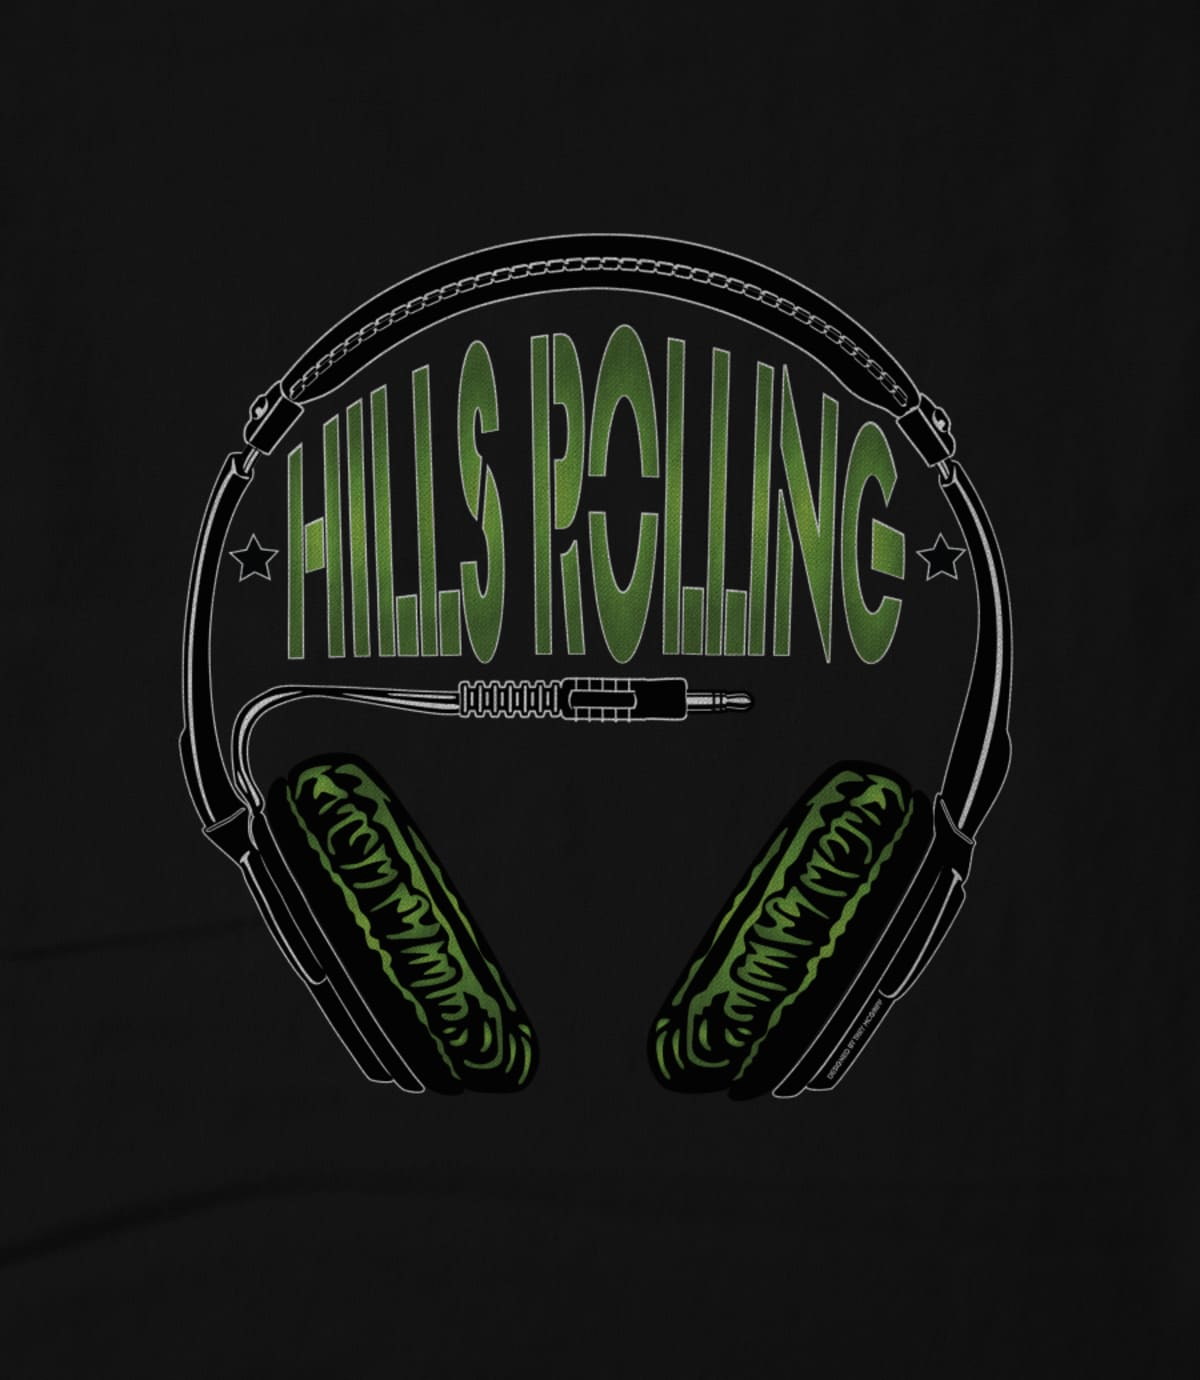 Hills rolling plug in your headphones design by trey mcgriff 1474476668